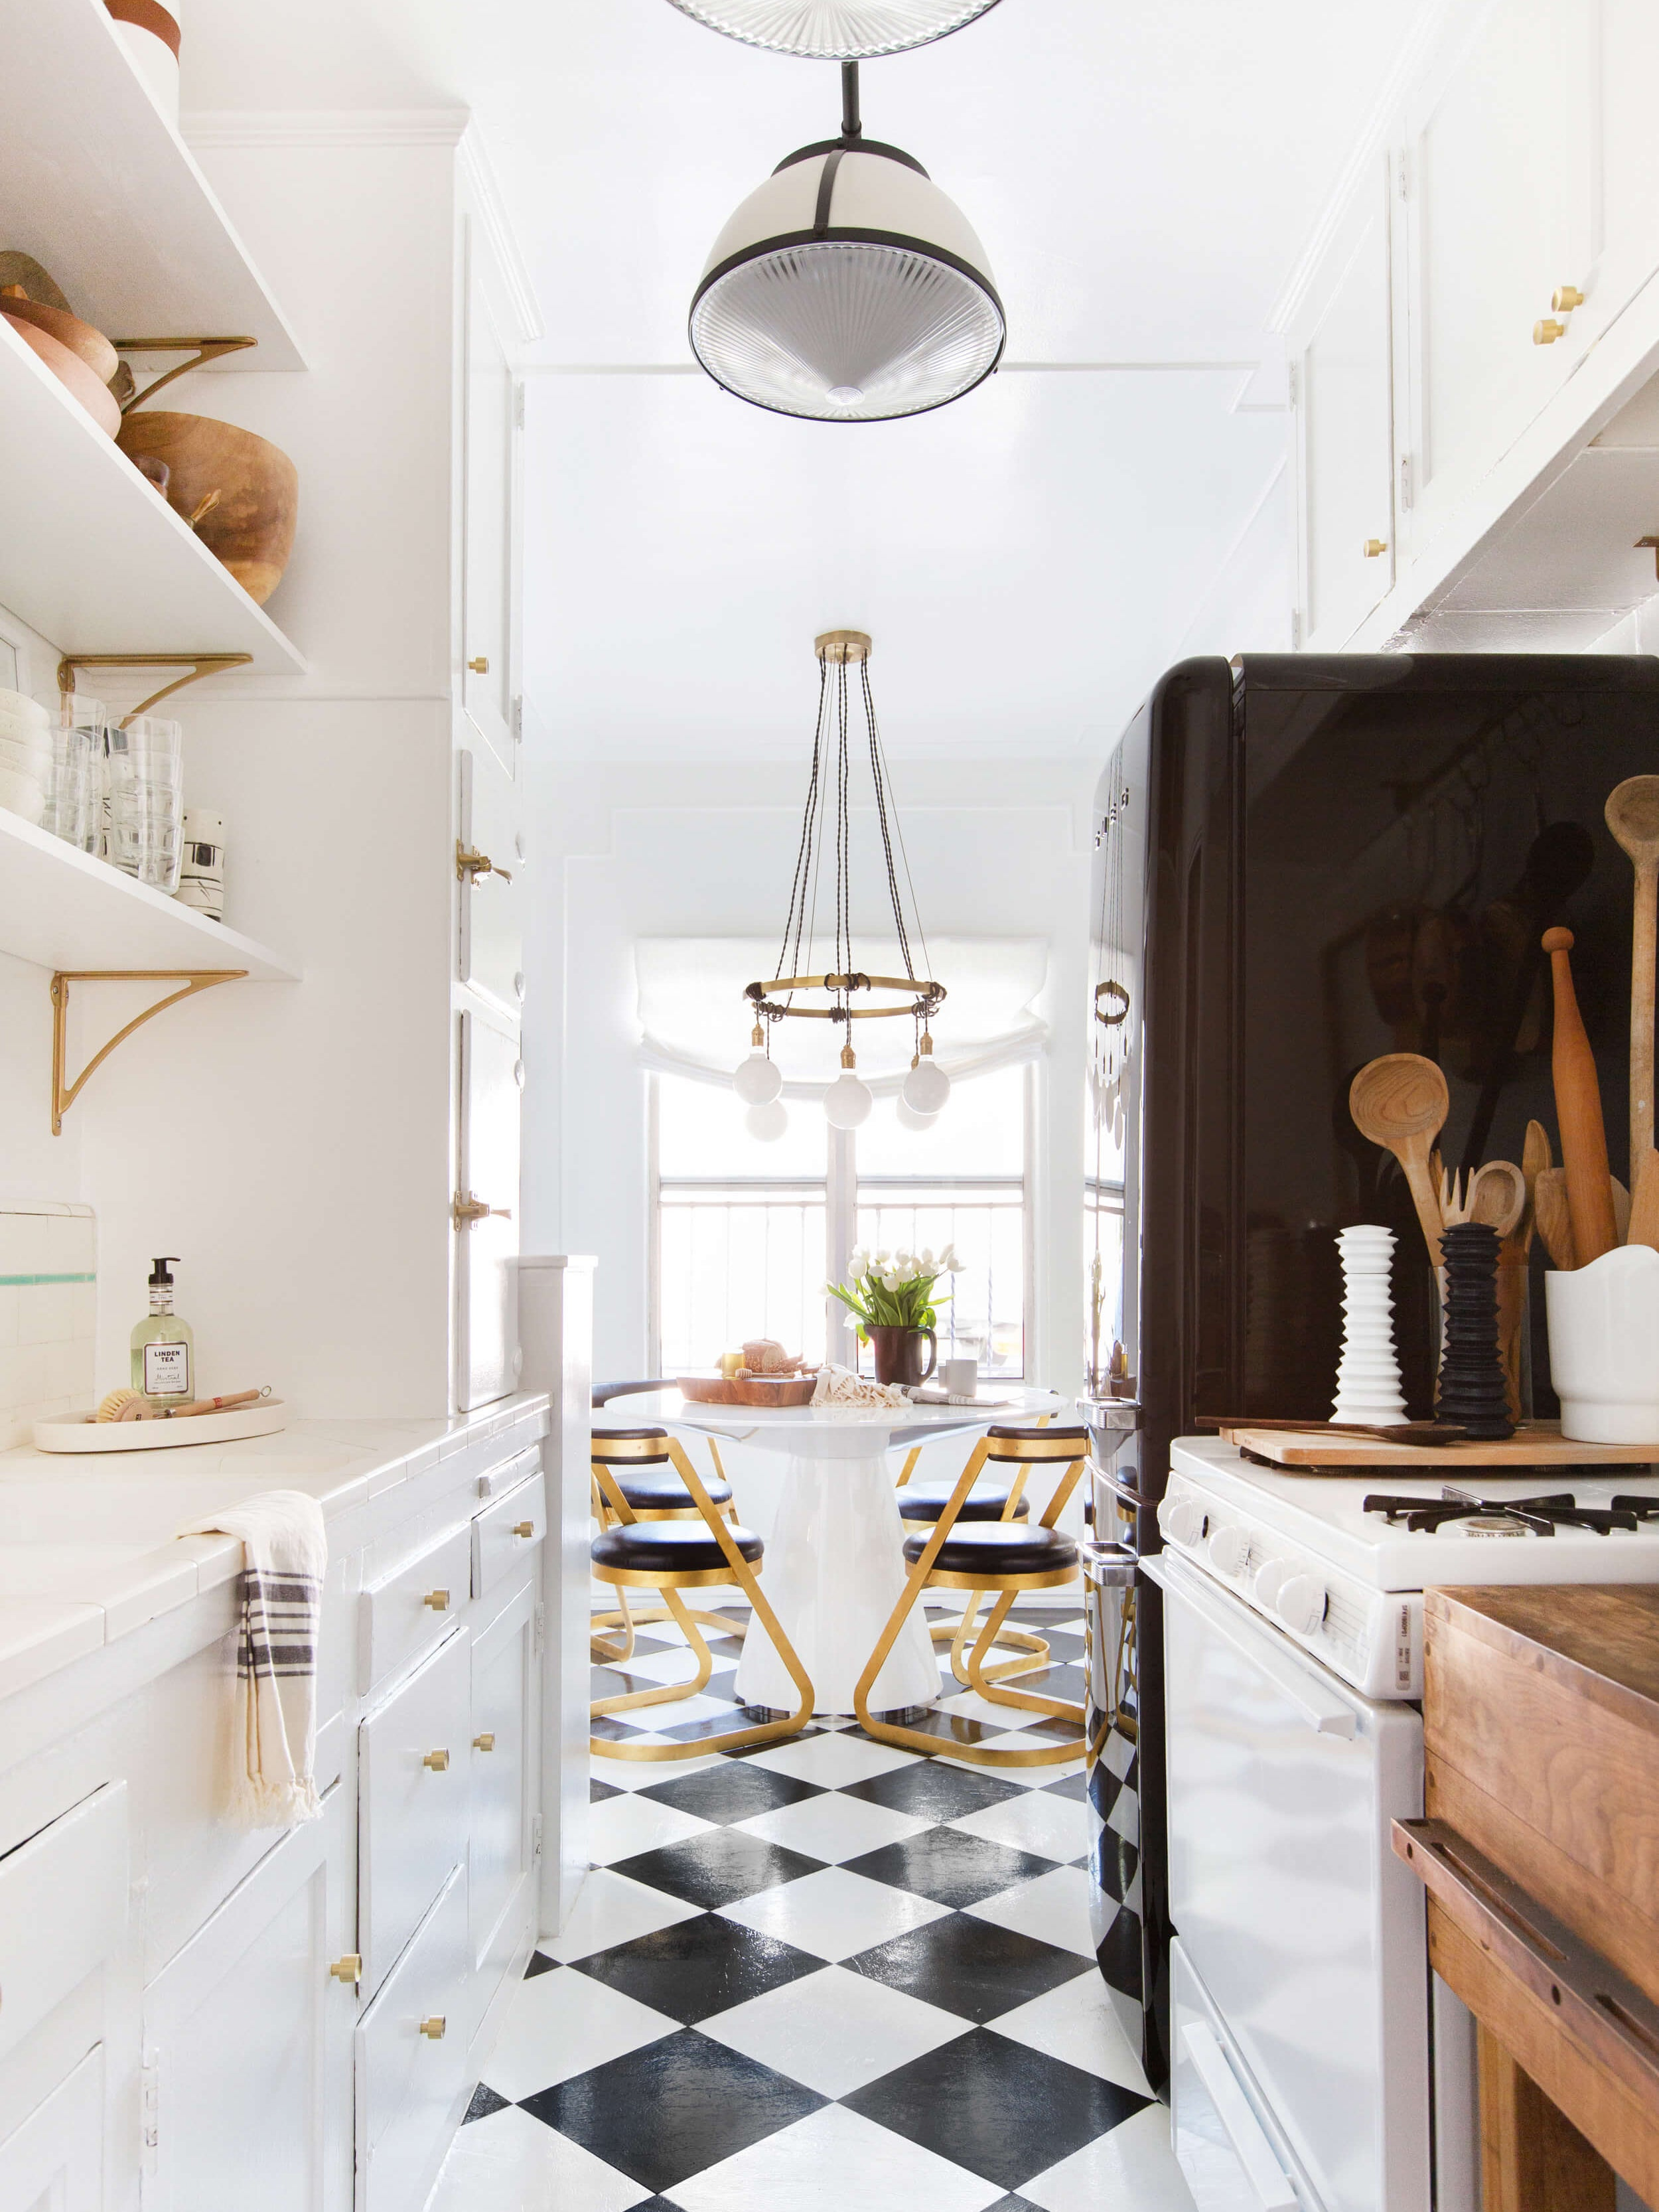 """This """"Dated"""" Kitchen Trend Is Back (and We're Into It)"""